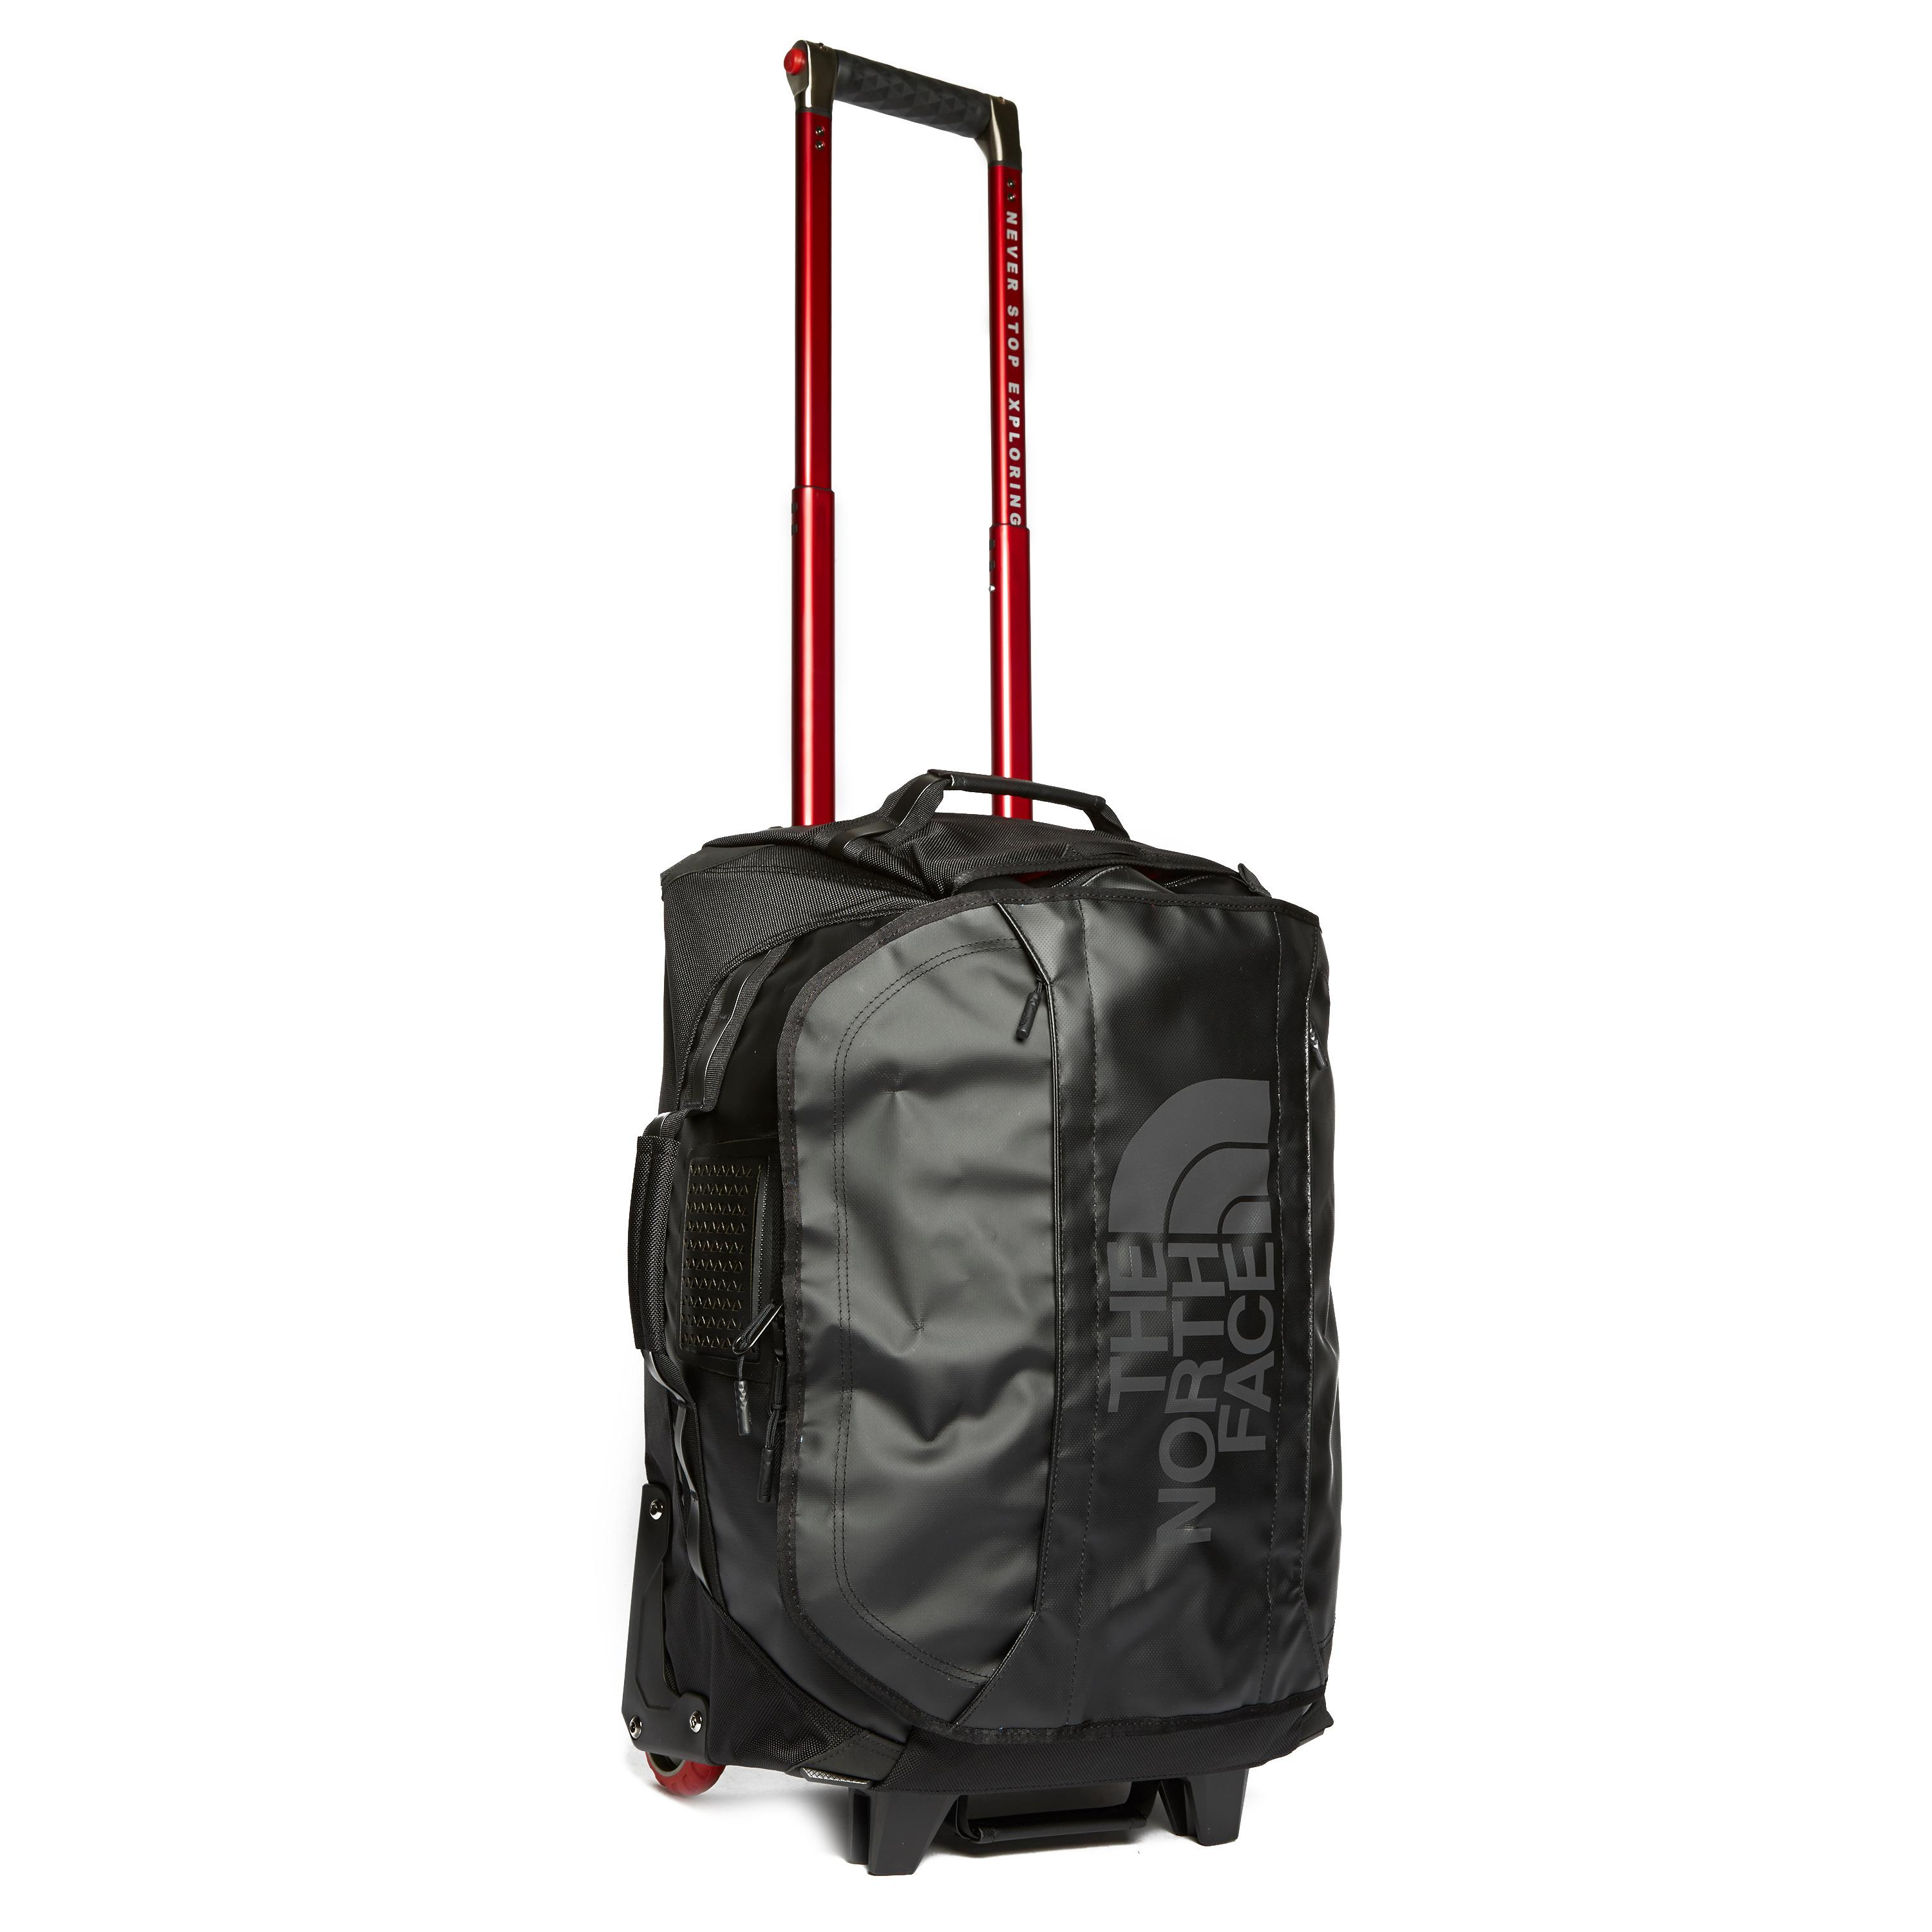 23e88302a Cheapest North face luggage deals online